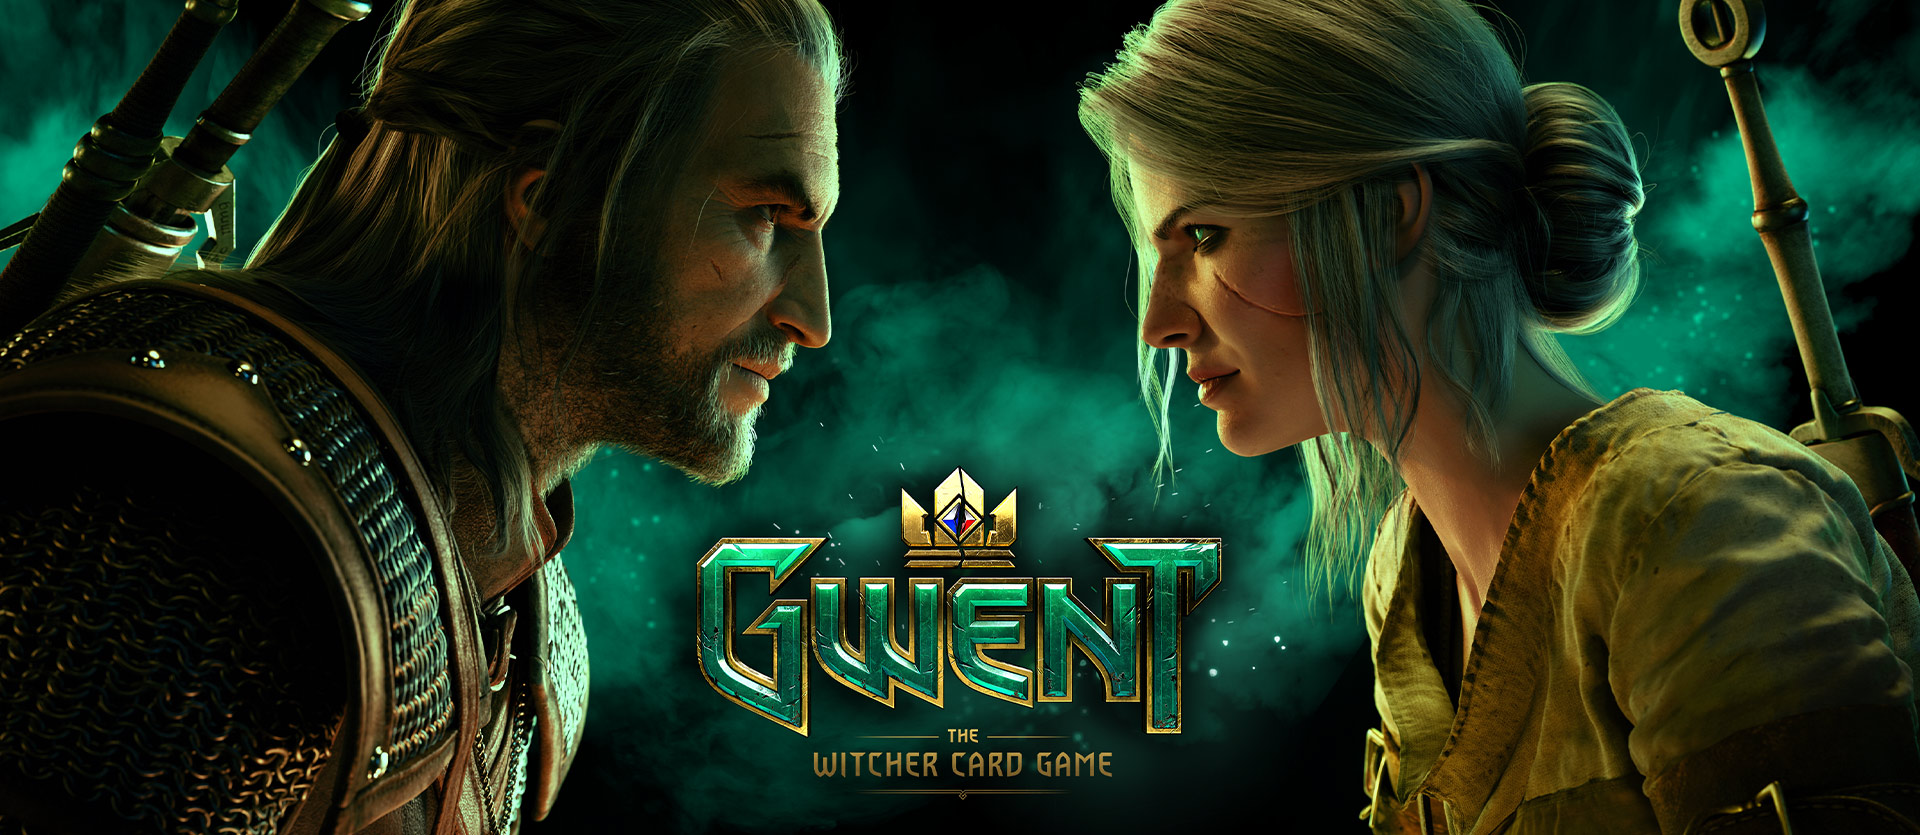 Gwent: The Witcher Card Game, Profile view of Geralt and Ciri as they face off